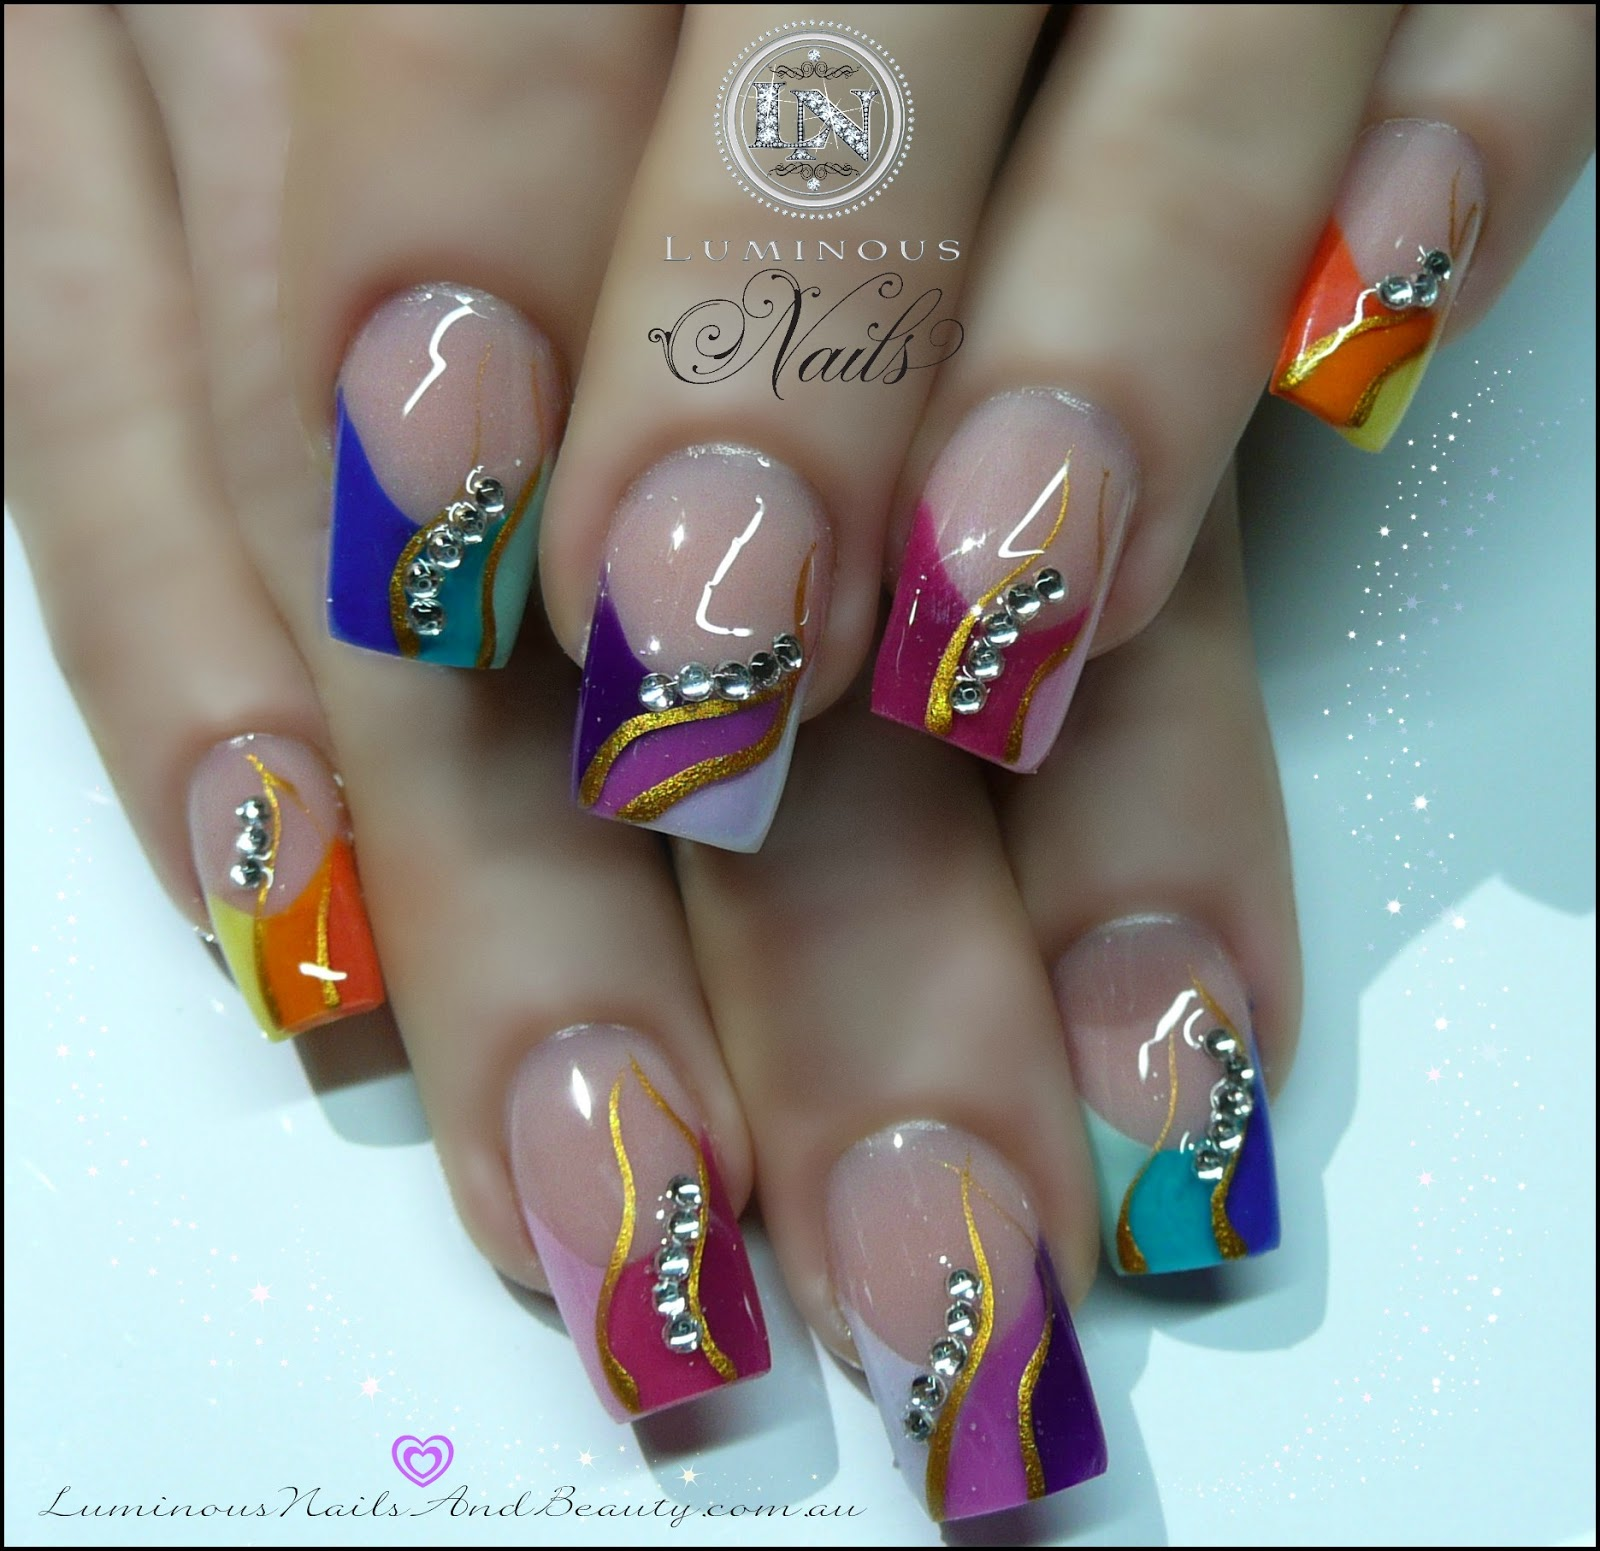 For Summer Acrylic Nails